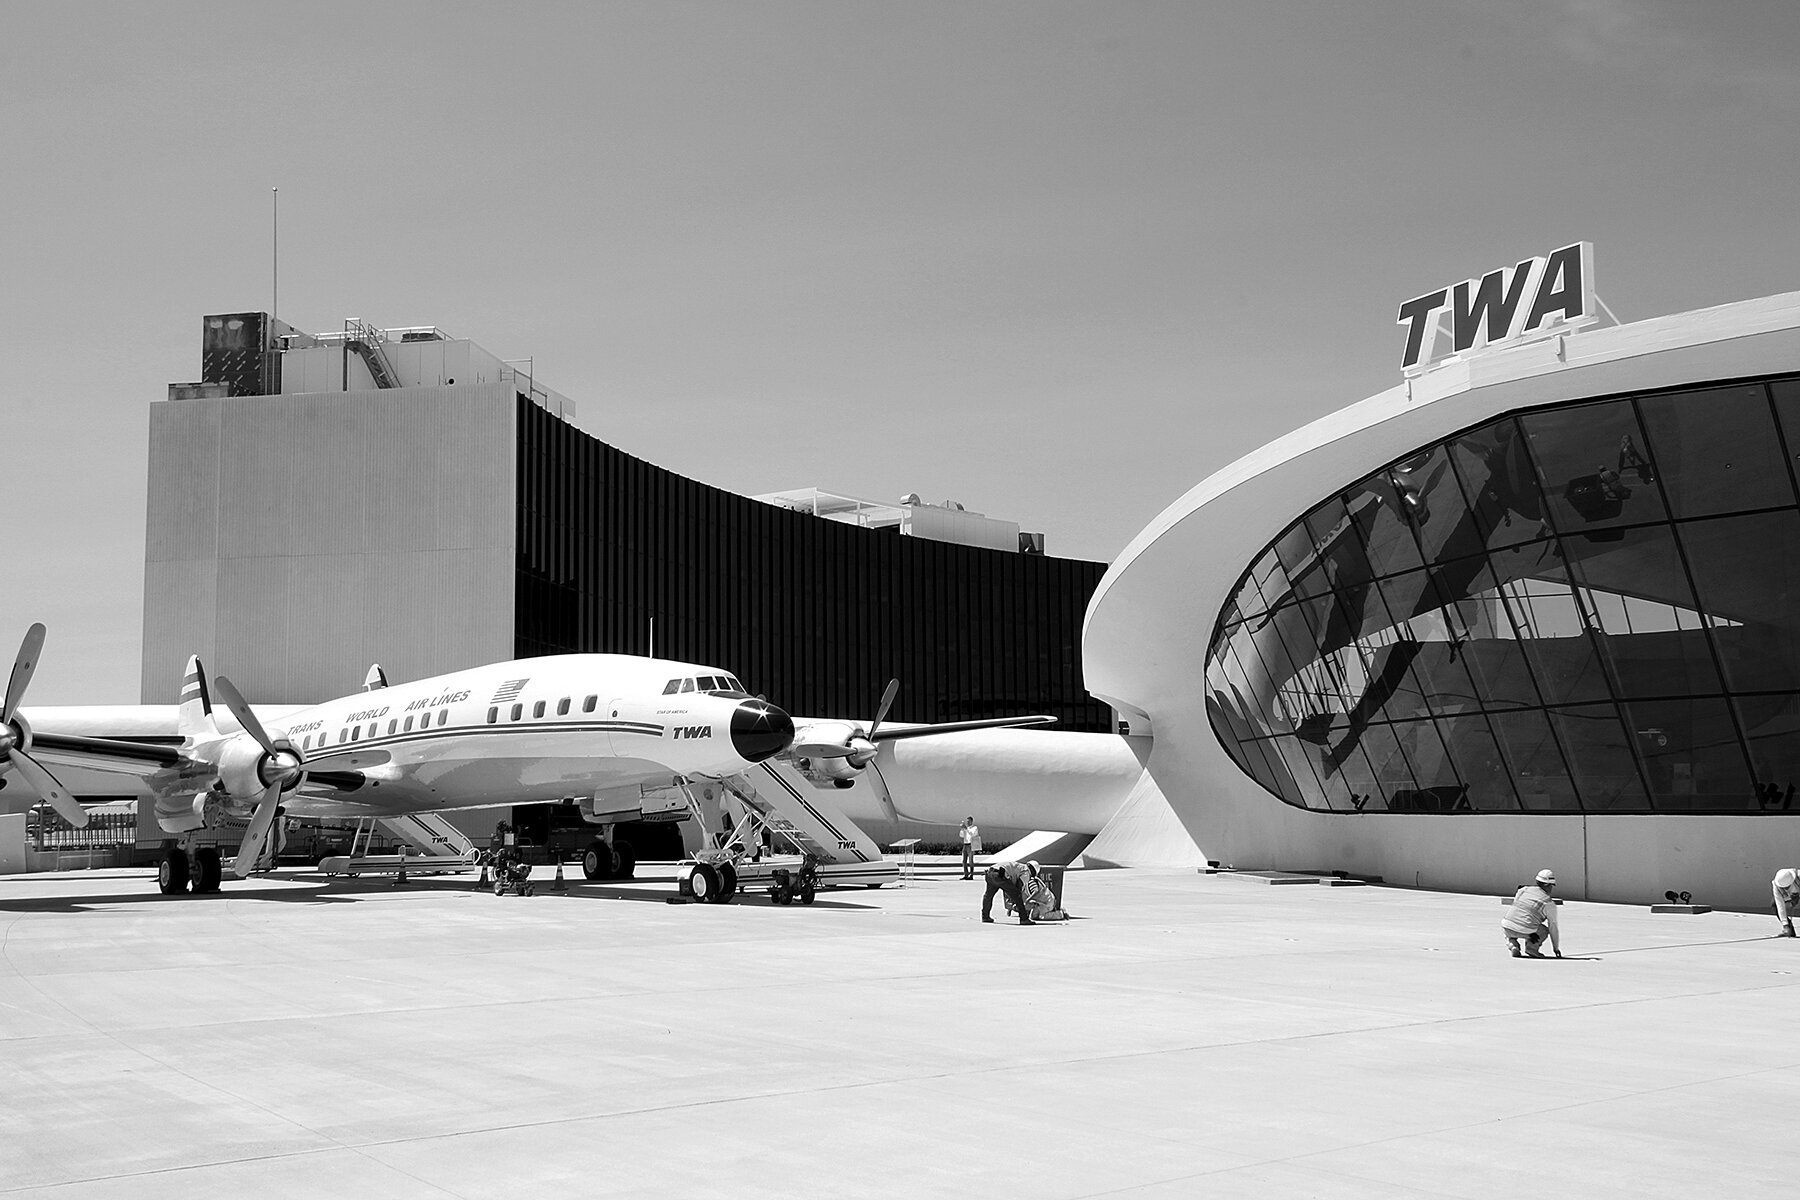 The restored Lockheed Constellation is a museum piece cum bar, grounded on a faux tarmac. Photo: Patrick Templeton. Top: The TWA logo greets visitors arriving at the new hotel. Photo: David Mitchell. Courtesy TWA Hotel.